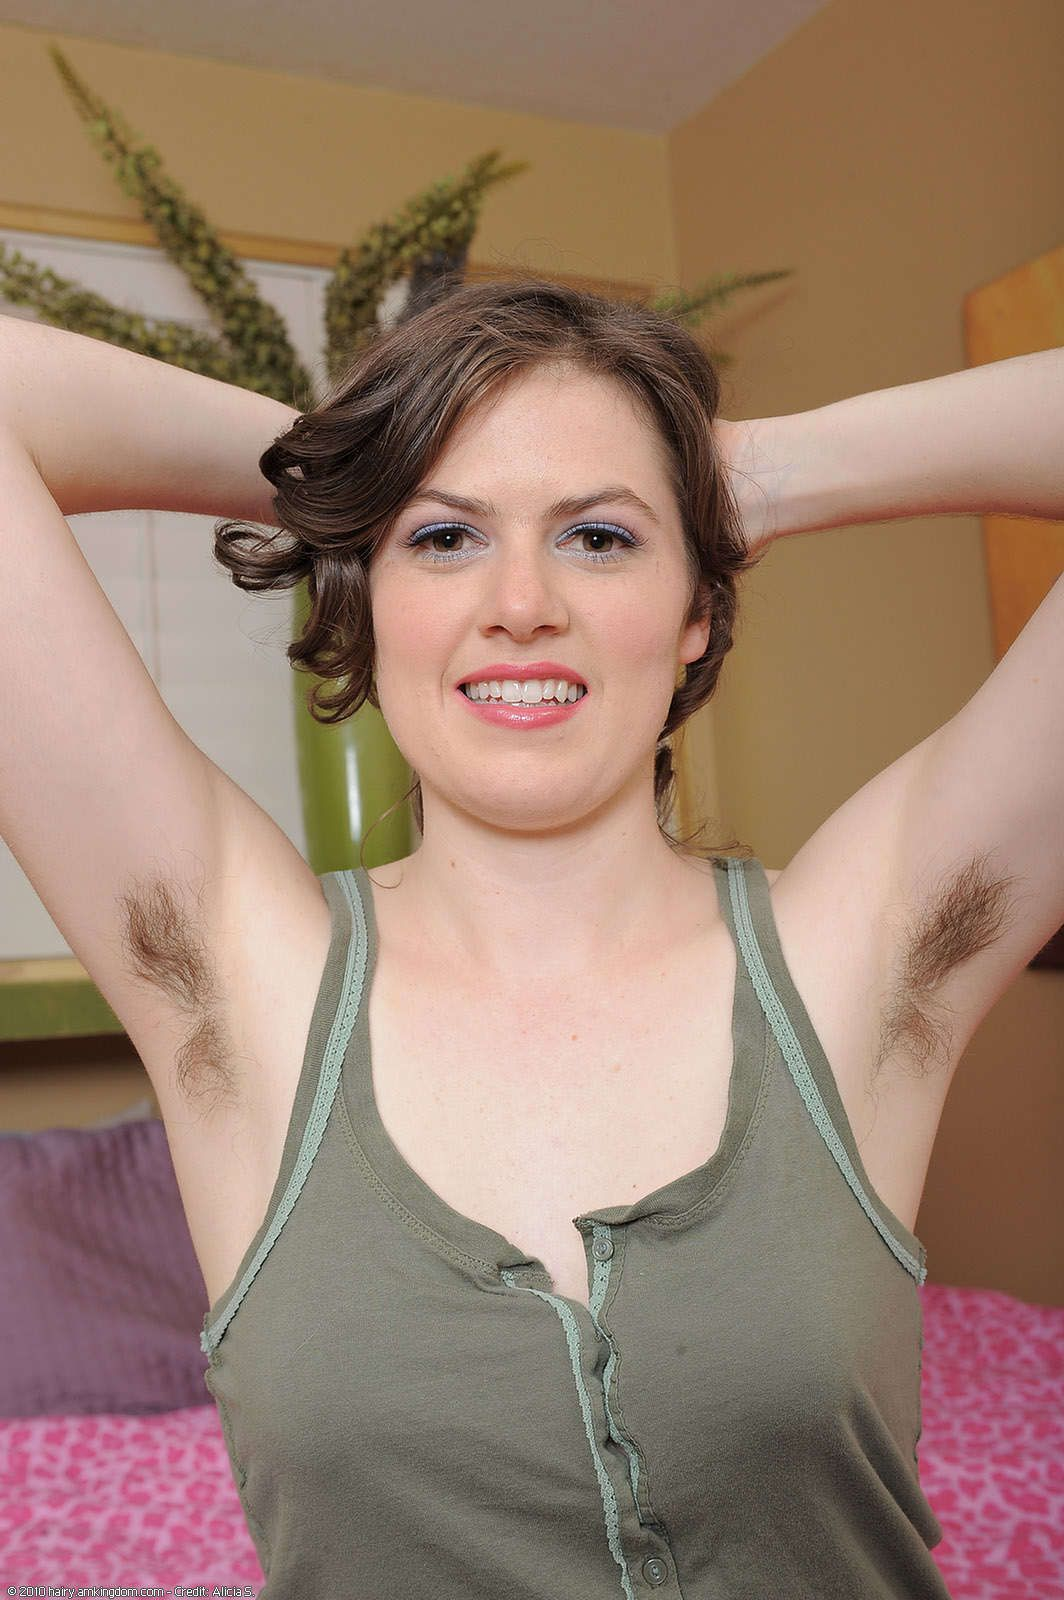 Nude women with armpit hair